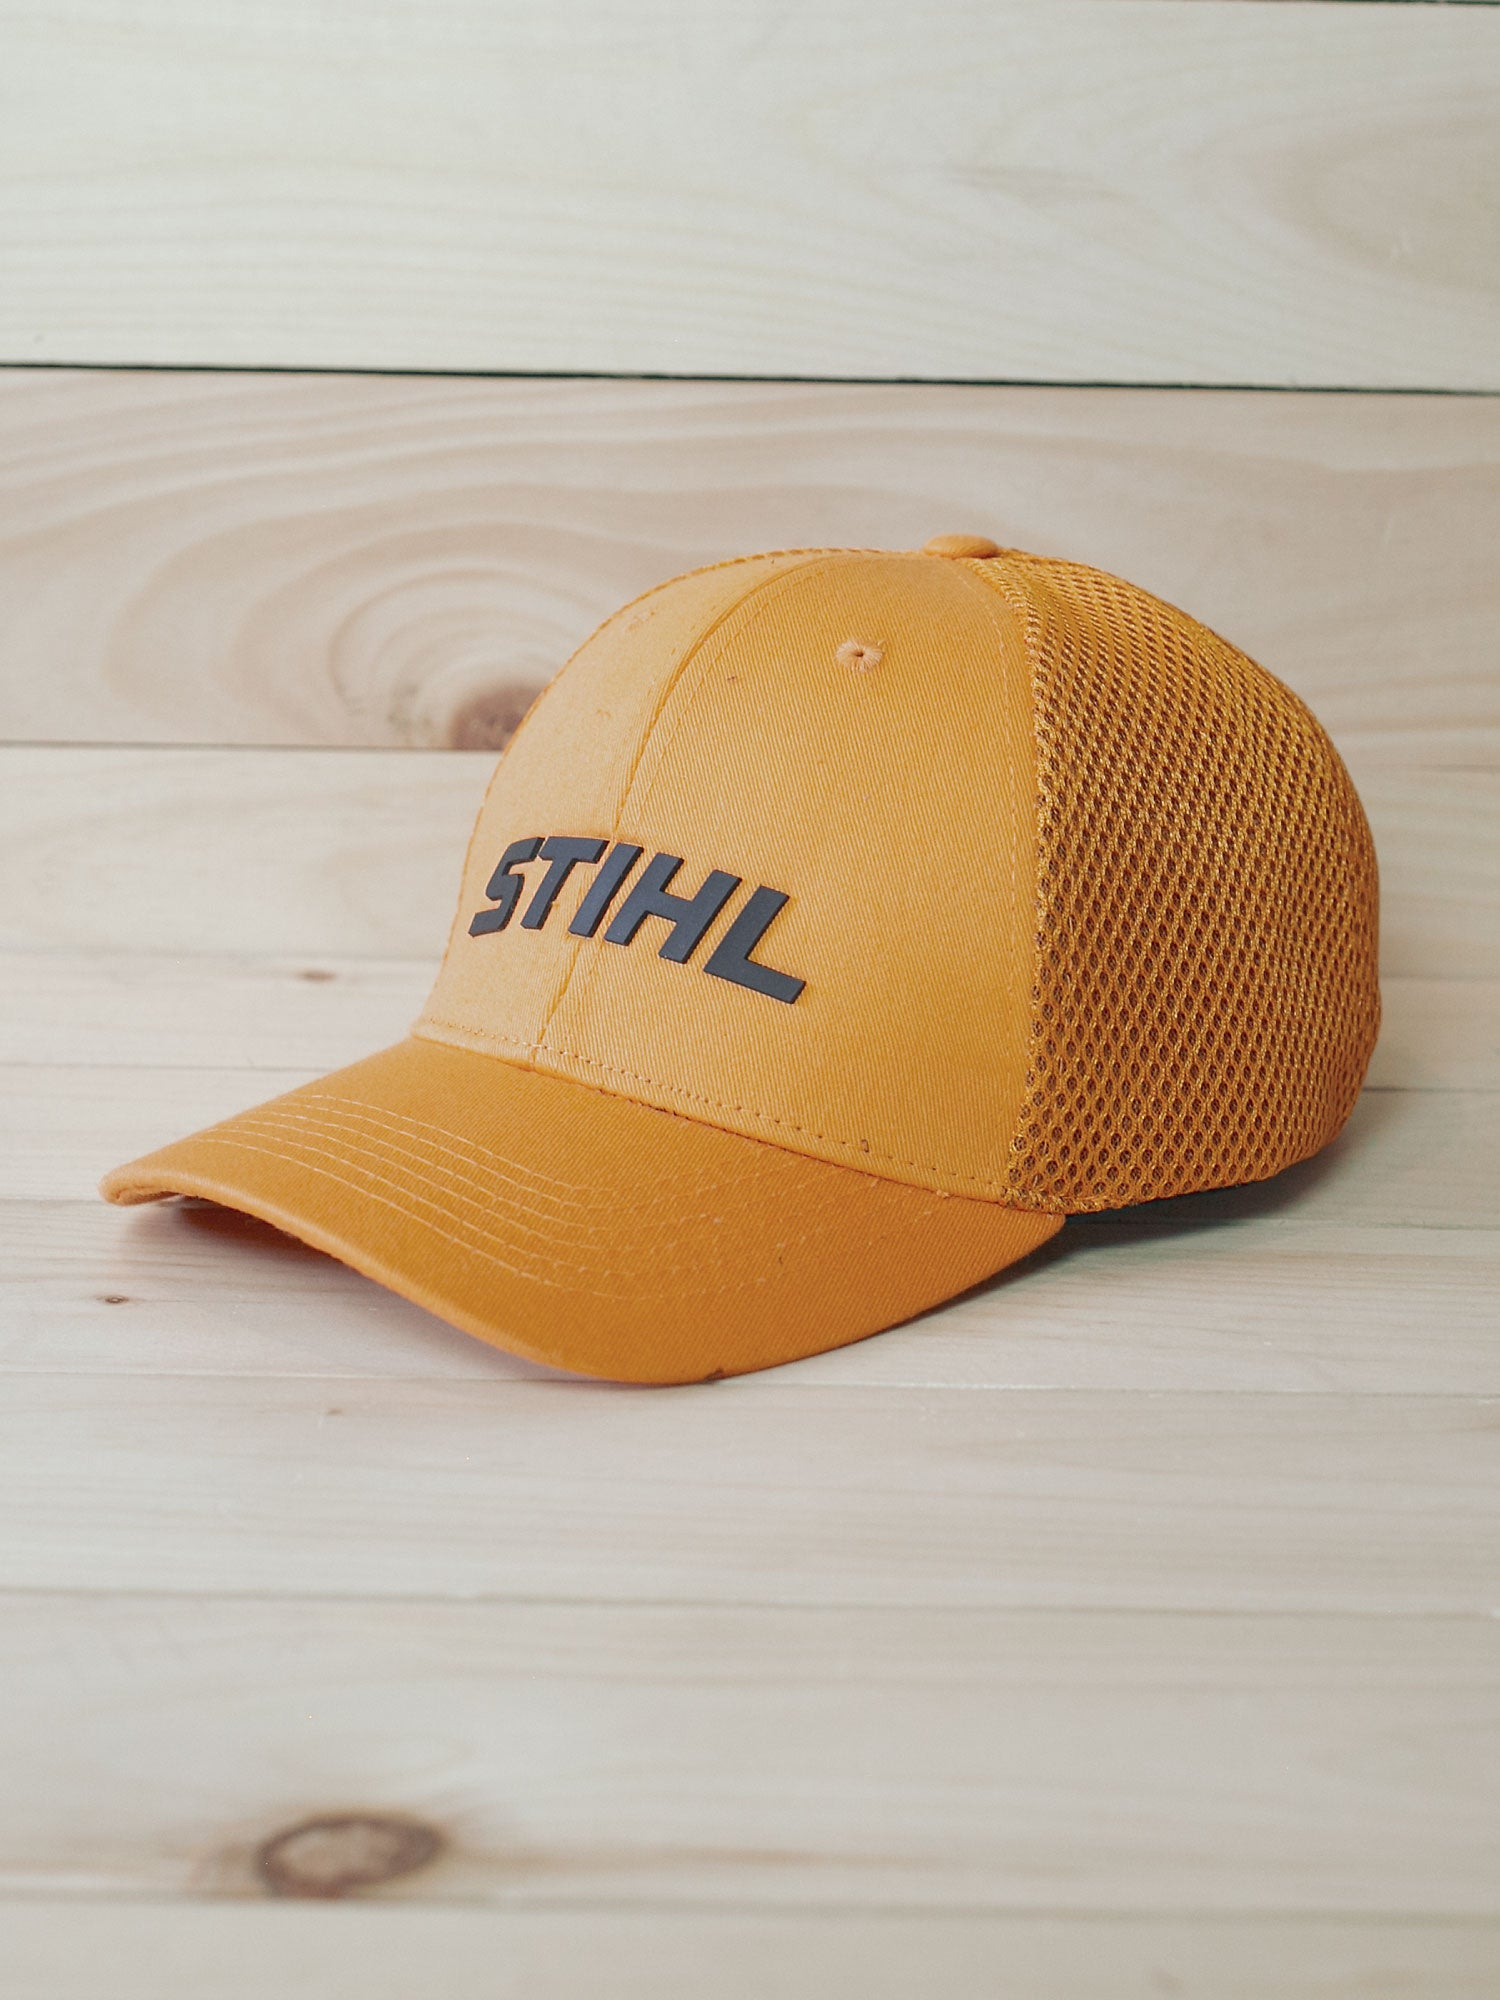 STIHL Orange Performance Hat